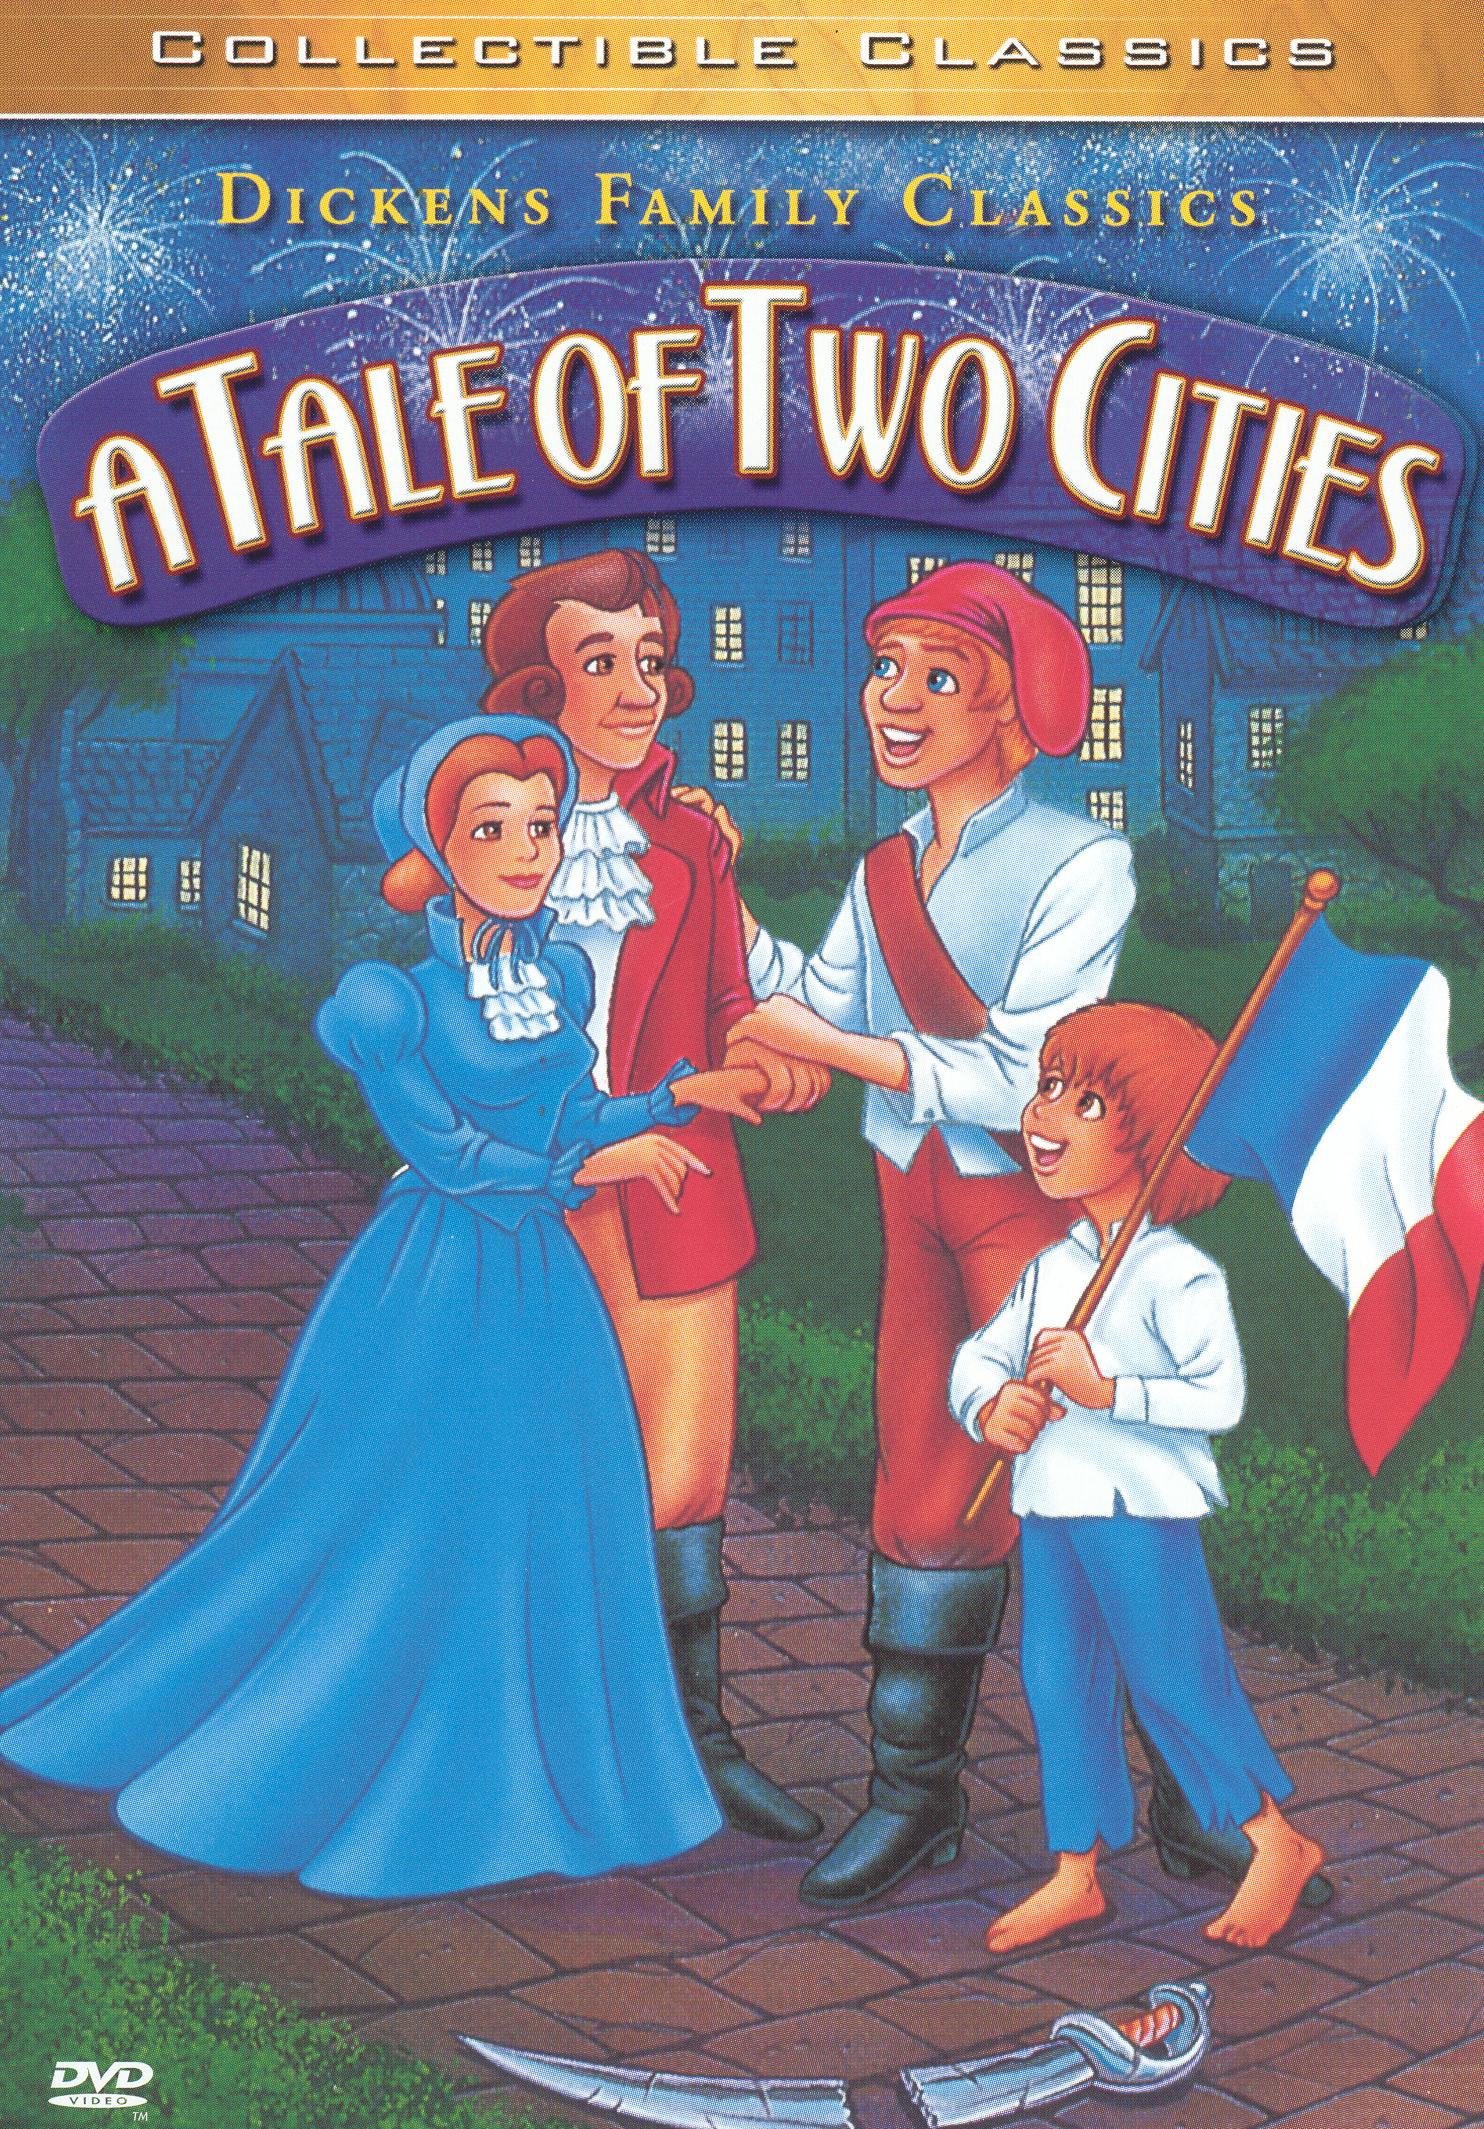 theme oppression tale two cities Scholars describe a tale of two cities as the least dickens was also drawn to the themes inherent in the frozen deep, a play oppression on a large.